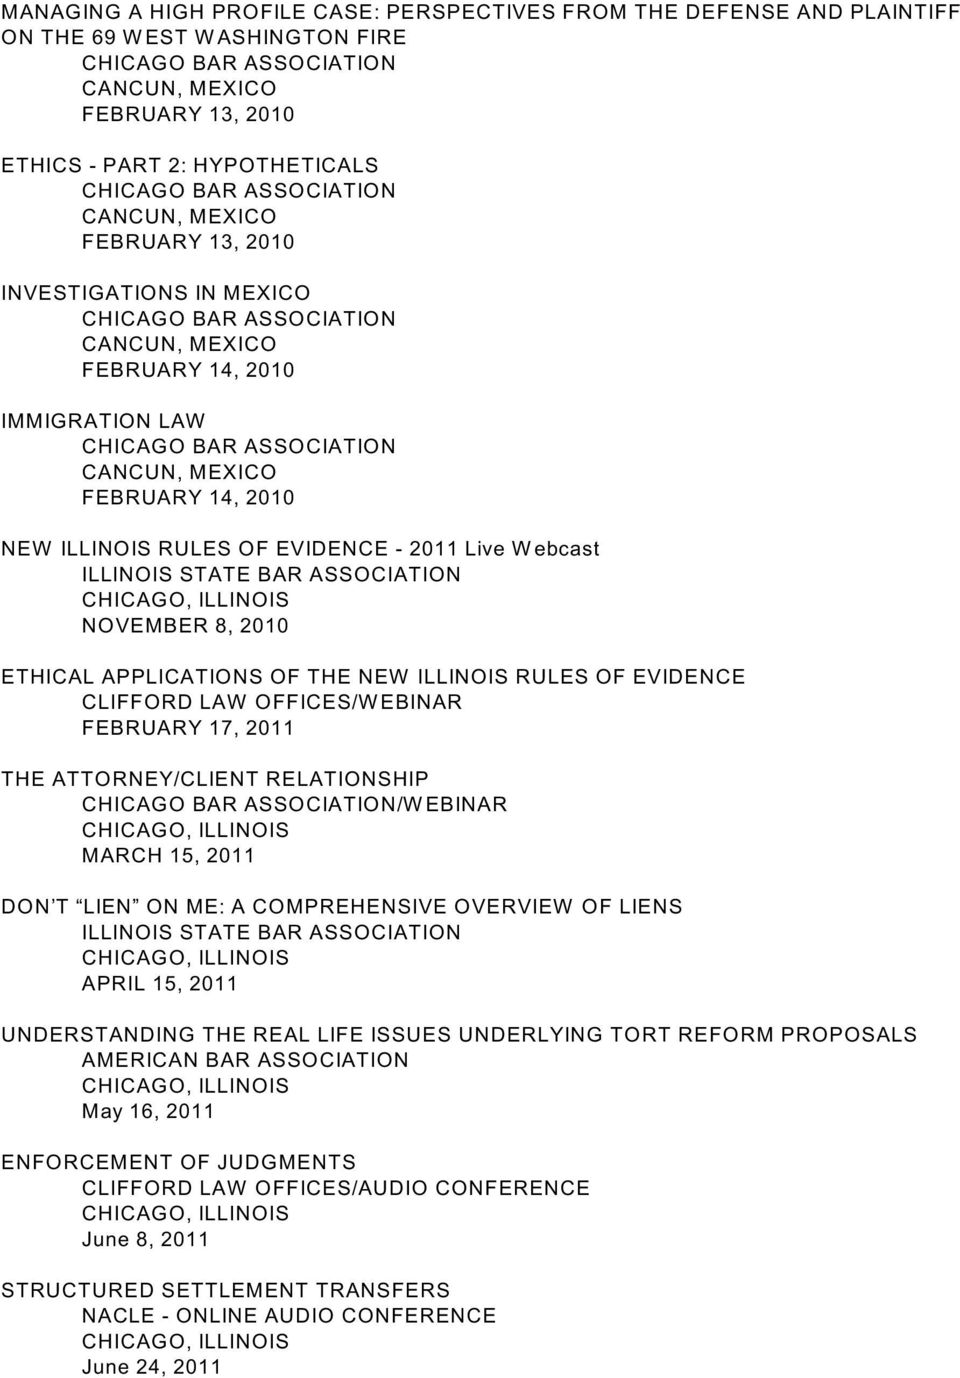 OF EVIDENCE CLIFFORD LAW OFFICES/W EBINAR FEBRUARY 17, 2011 THE ATTORNEY/CLIENT RELATIONSHIP /W EBINAR MARCH 15, 2011 DON T LIEN ON ME: A COMPREHENSIVE OVERVIEW OF LIENS ILLINOIS STATE BAR